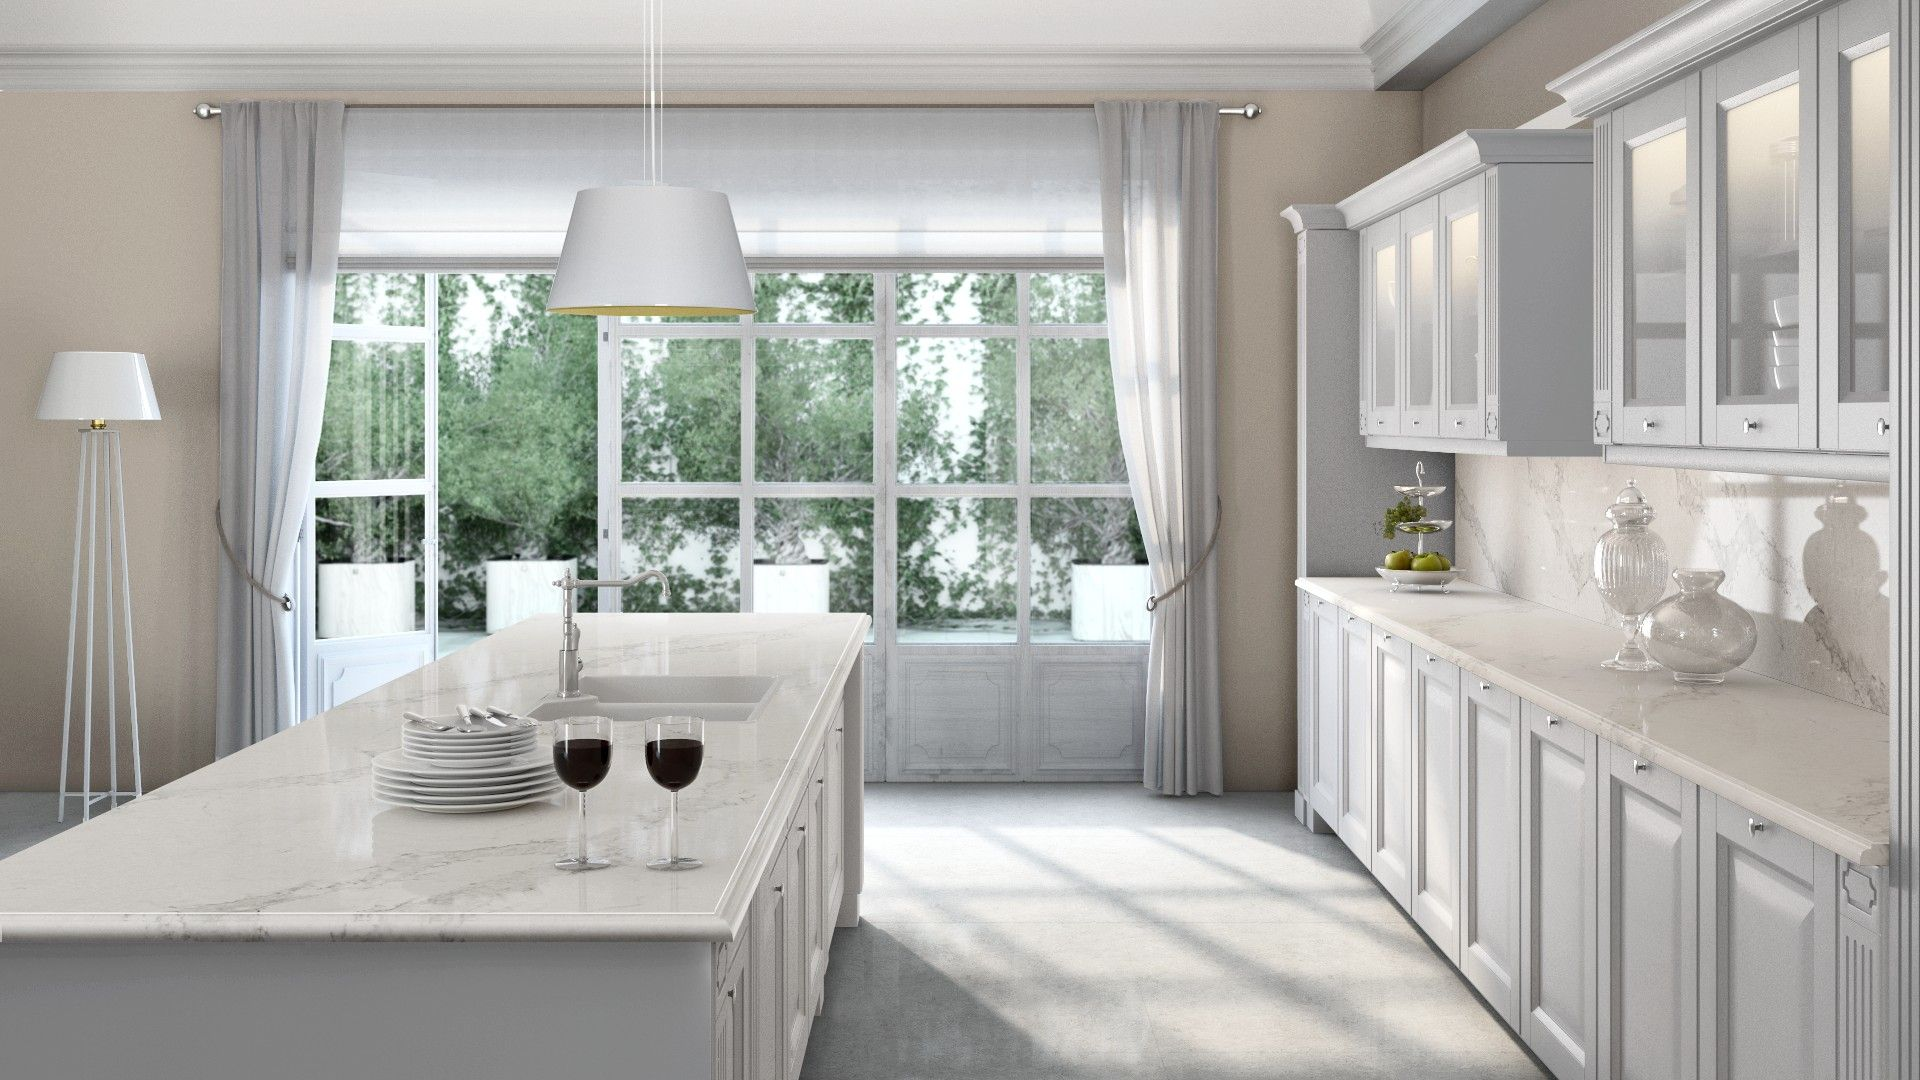 Caesarstone Visualizer   This White Kitchen Design Looks Amazing On The  Plans   Can Only Imagine